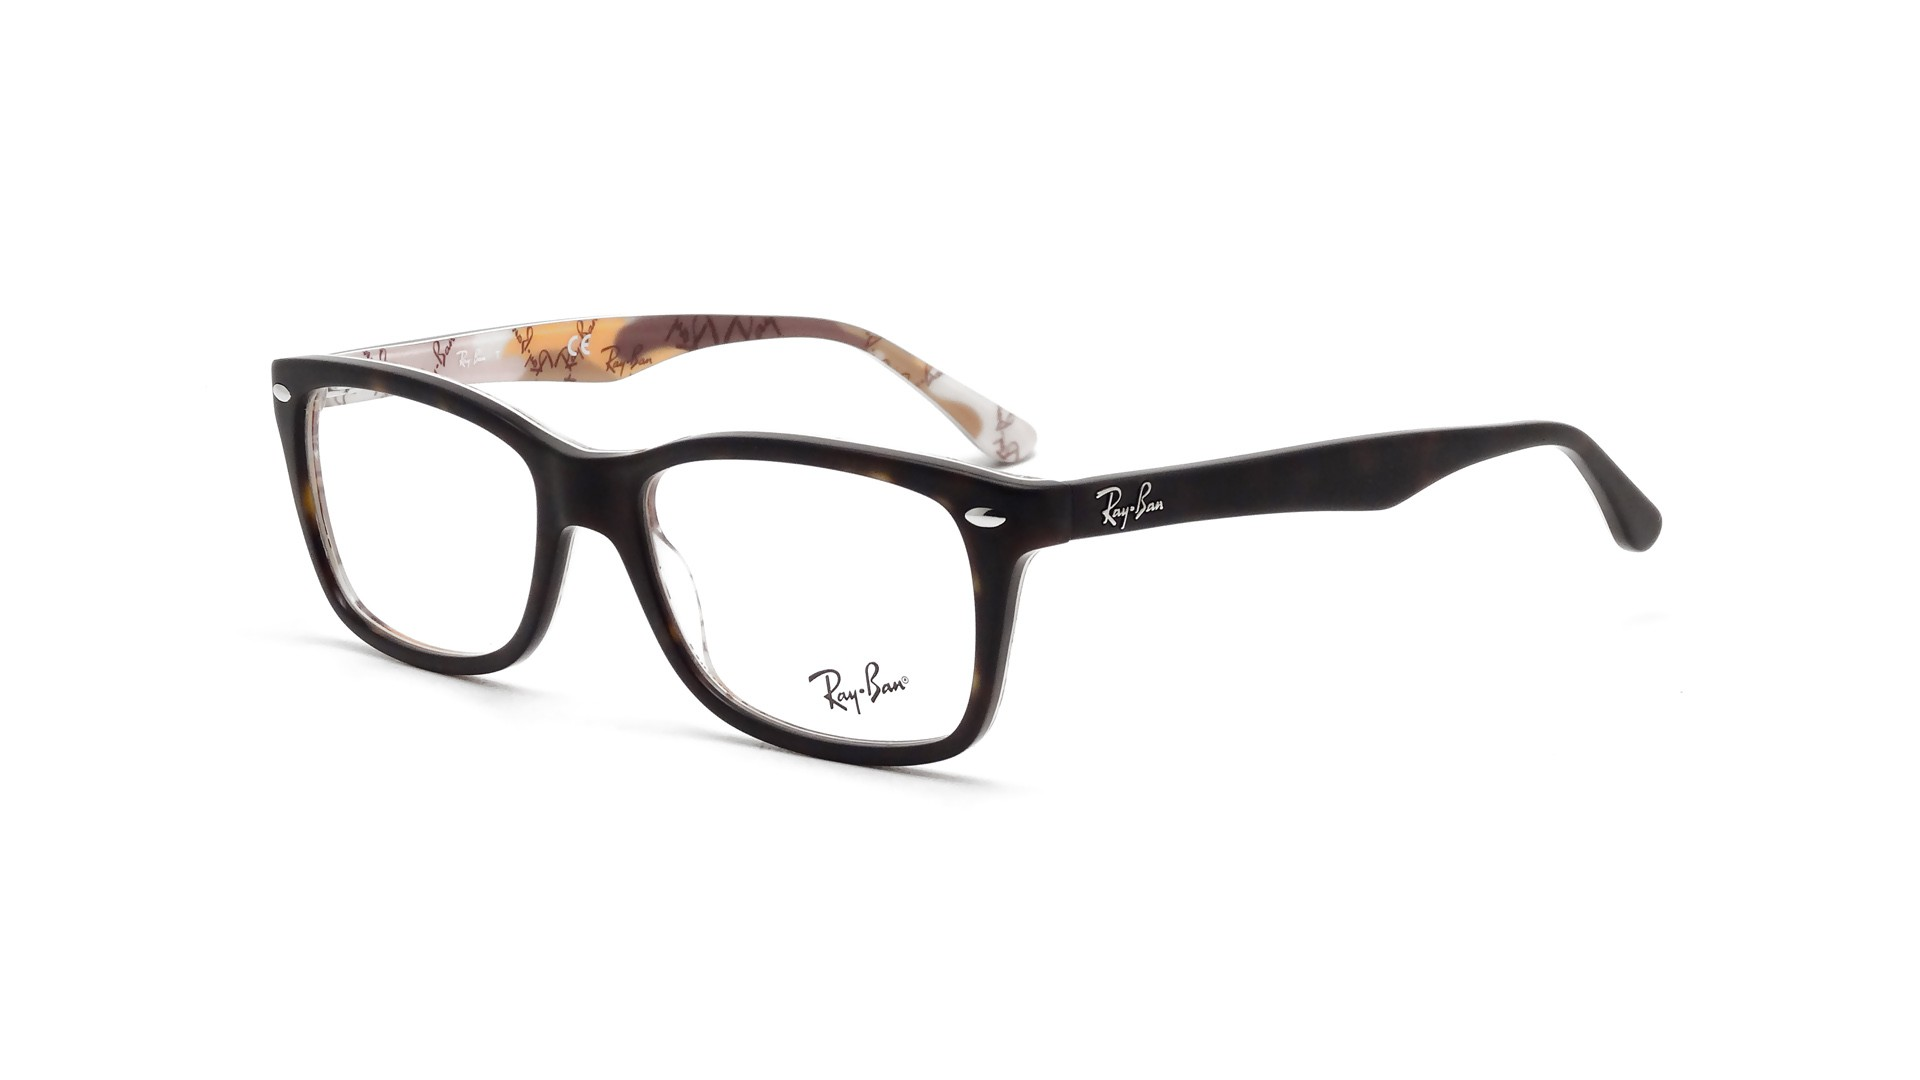 6a2756198c Ray Ban The Timeless Optics RB5228 - Denmead Eyecare